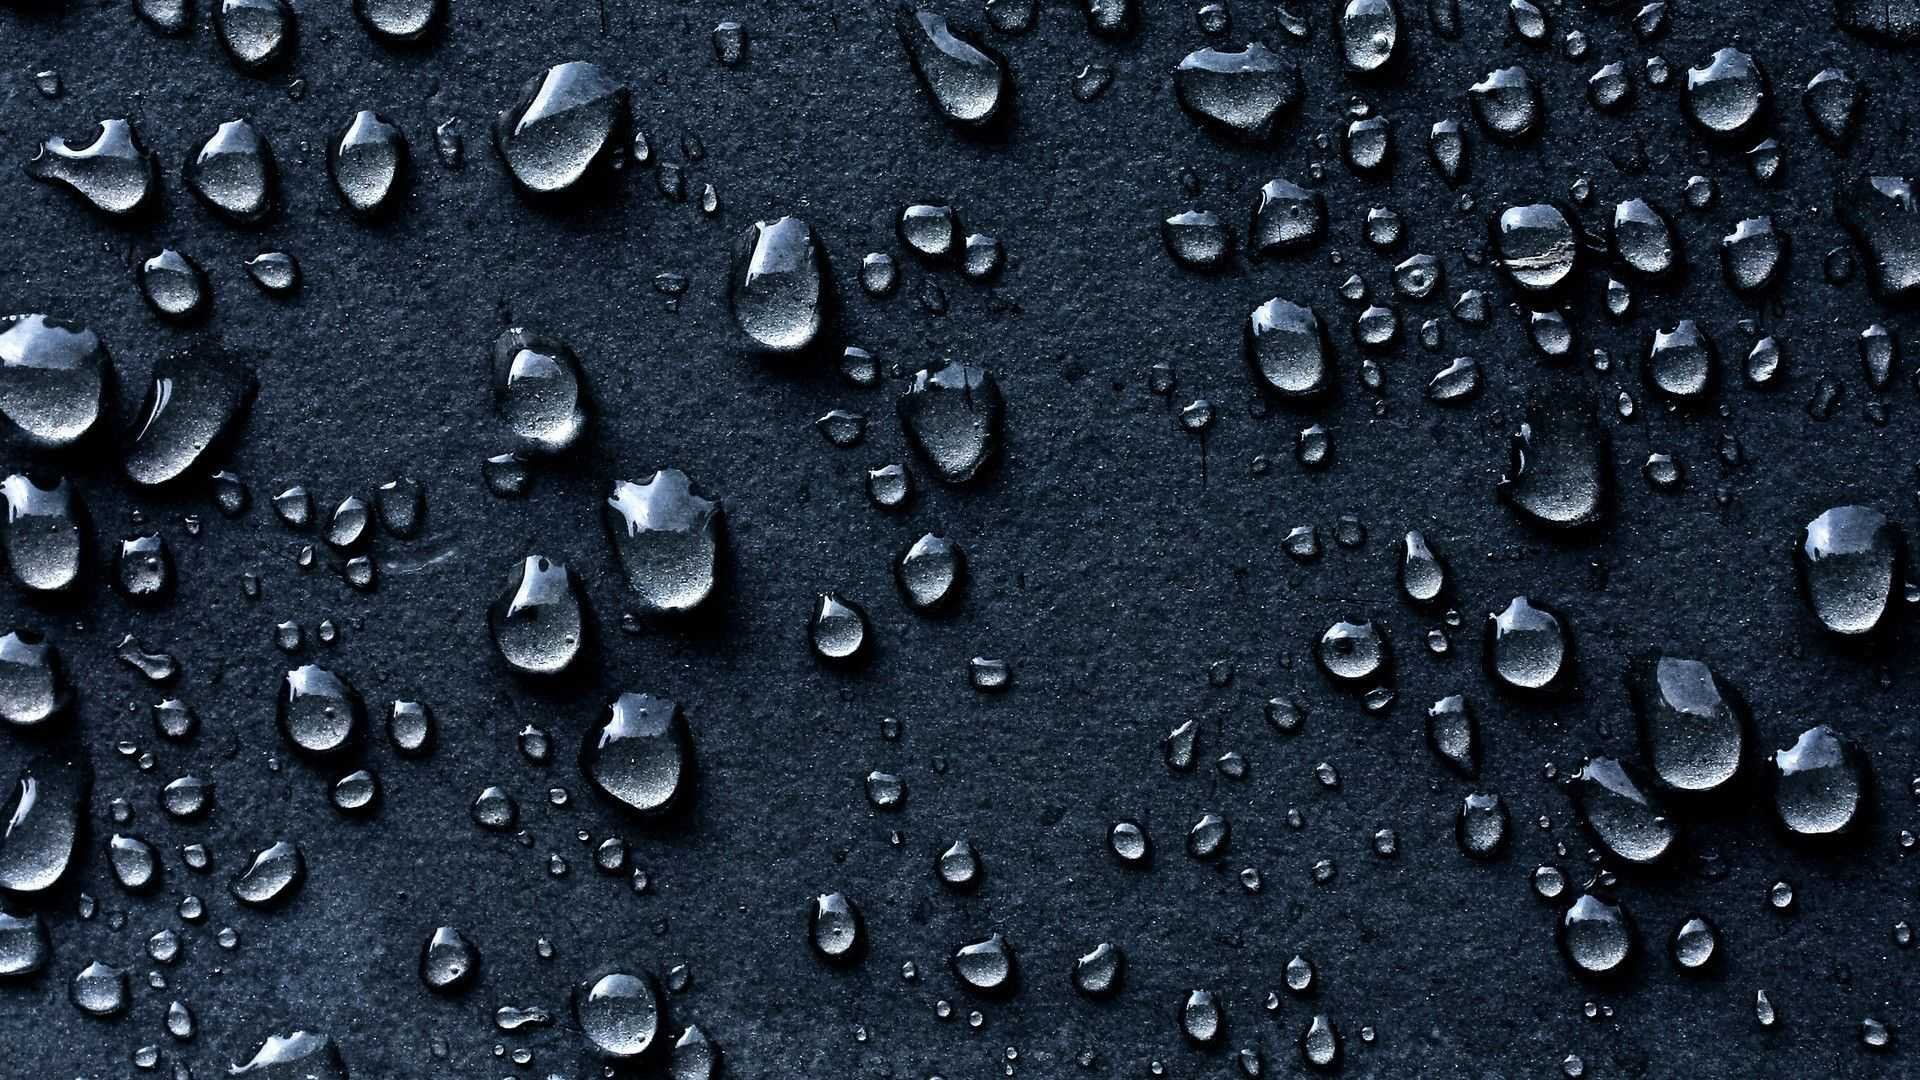 Water Drops Hd 1080p Wallpapers Downoads Stuff To Buy Dark